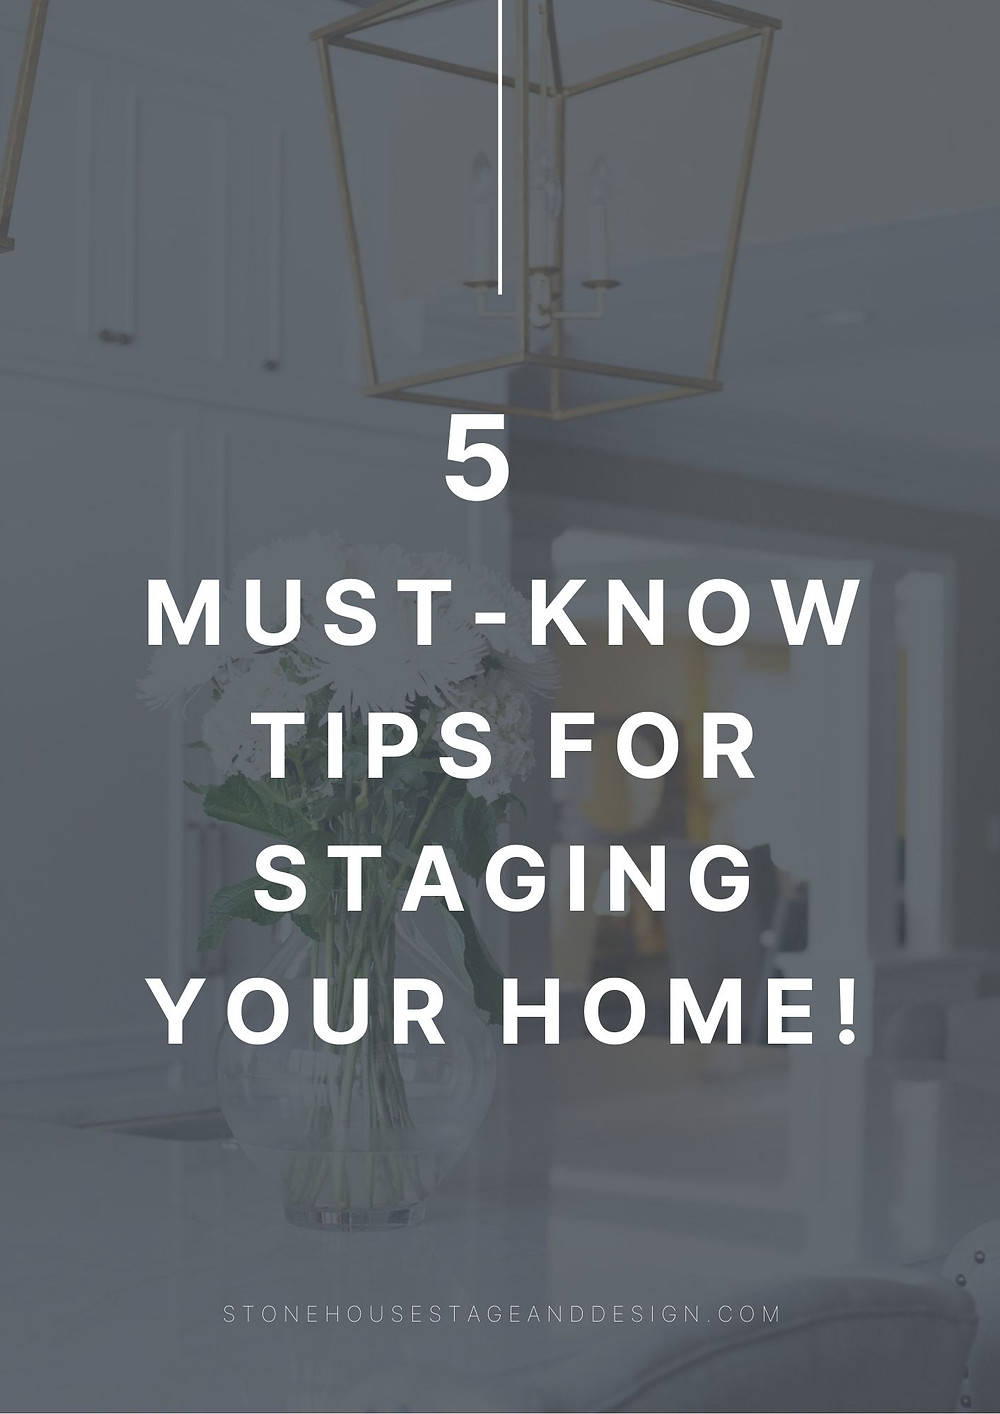 5 must-KNOW tips FOR STAGING YOUR HOME!